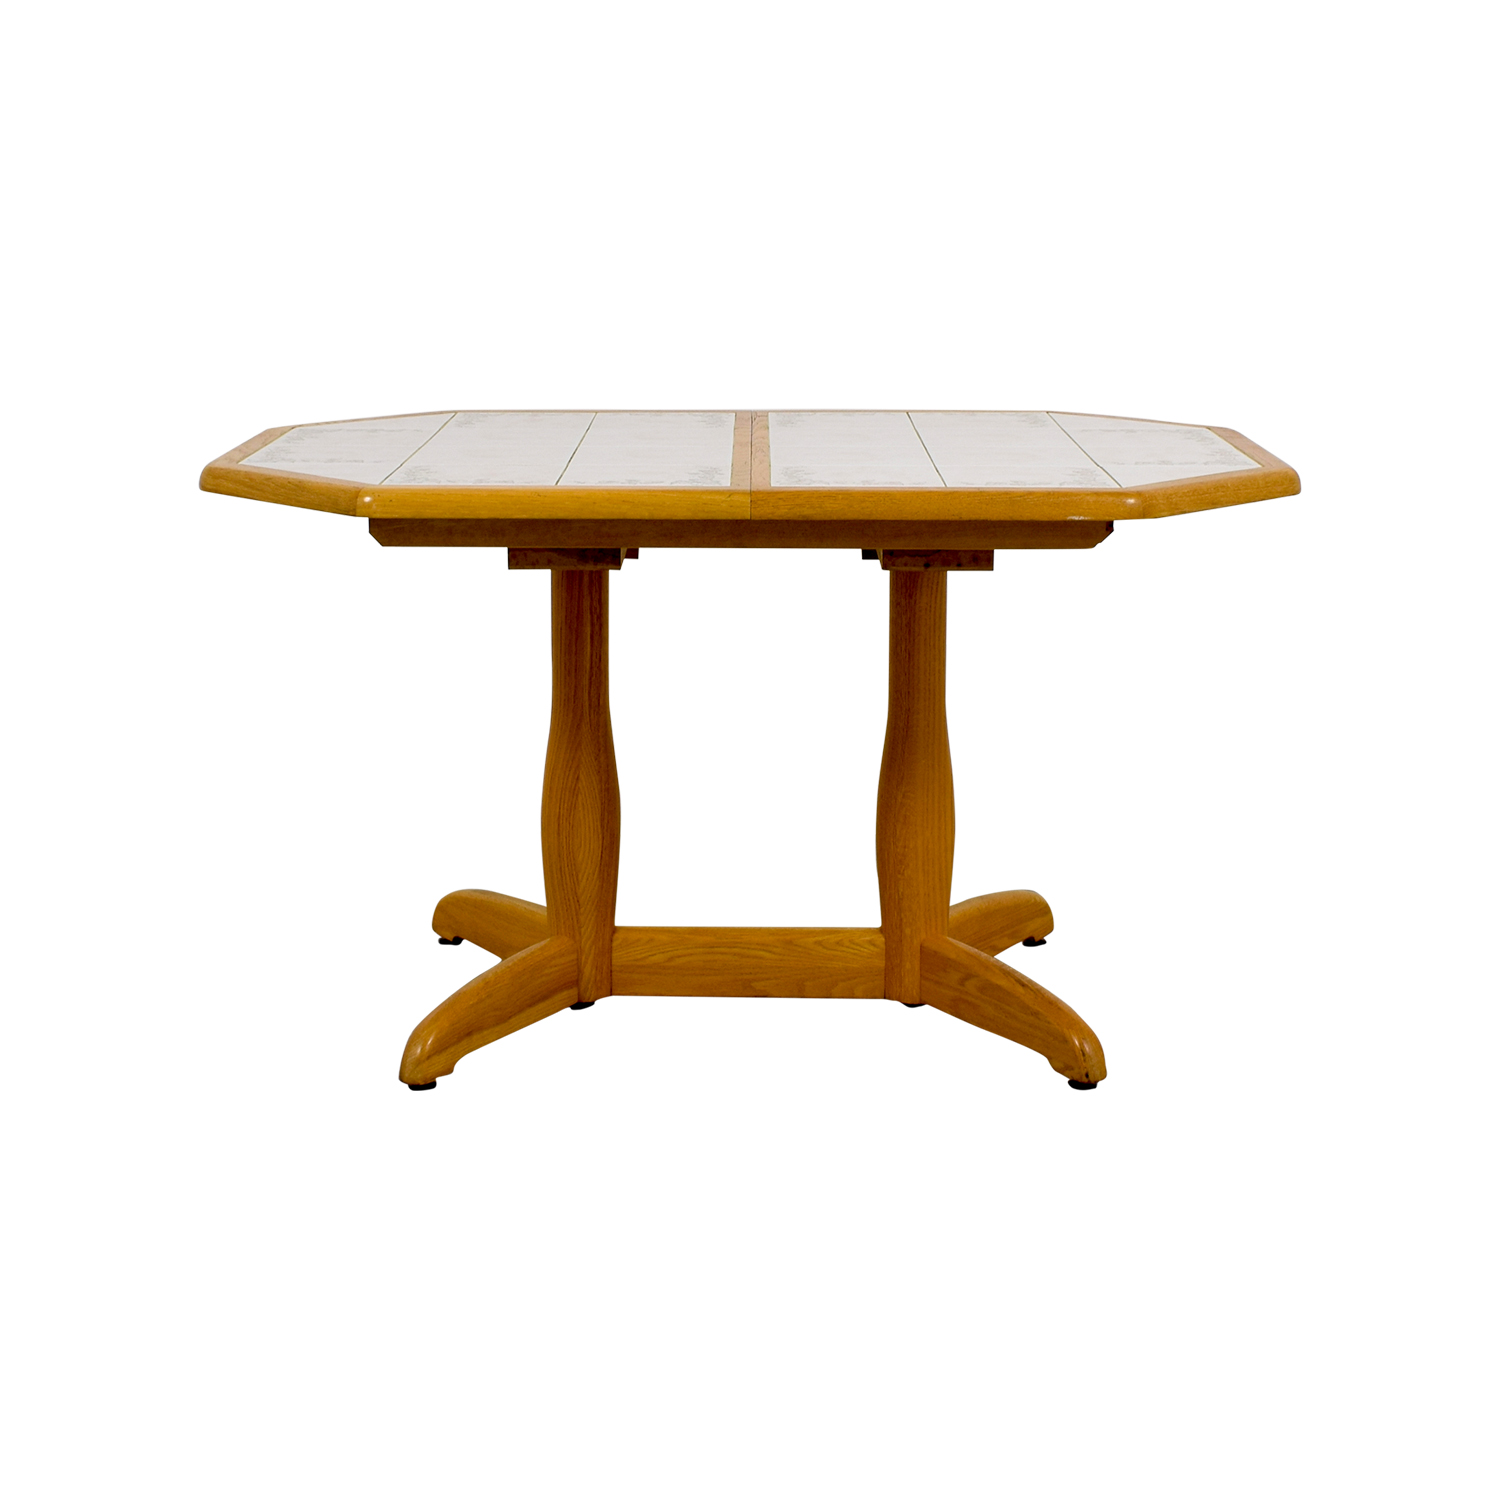 Tile Kitchen Tables 33 off dinaire dinaire wood and tile kitchen table tables shop dinaire wood and tile kitchen table dinaire tables workwithnaturefo